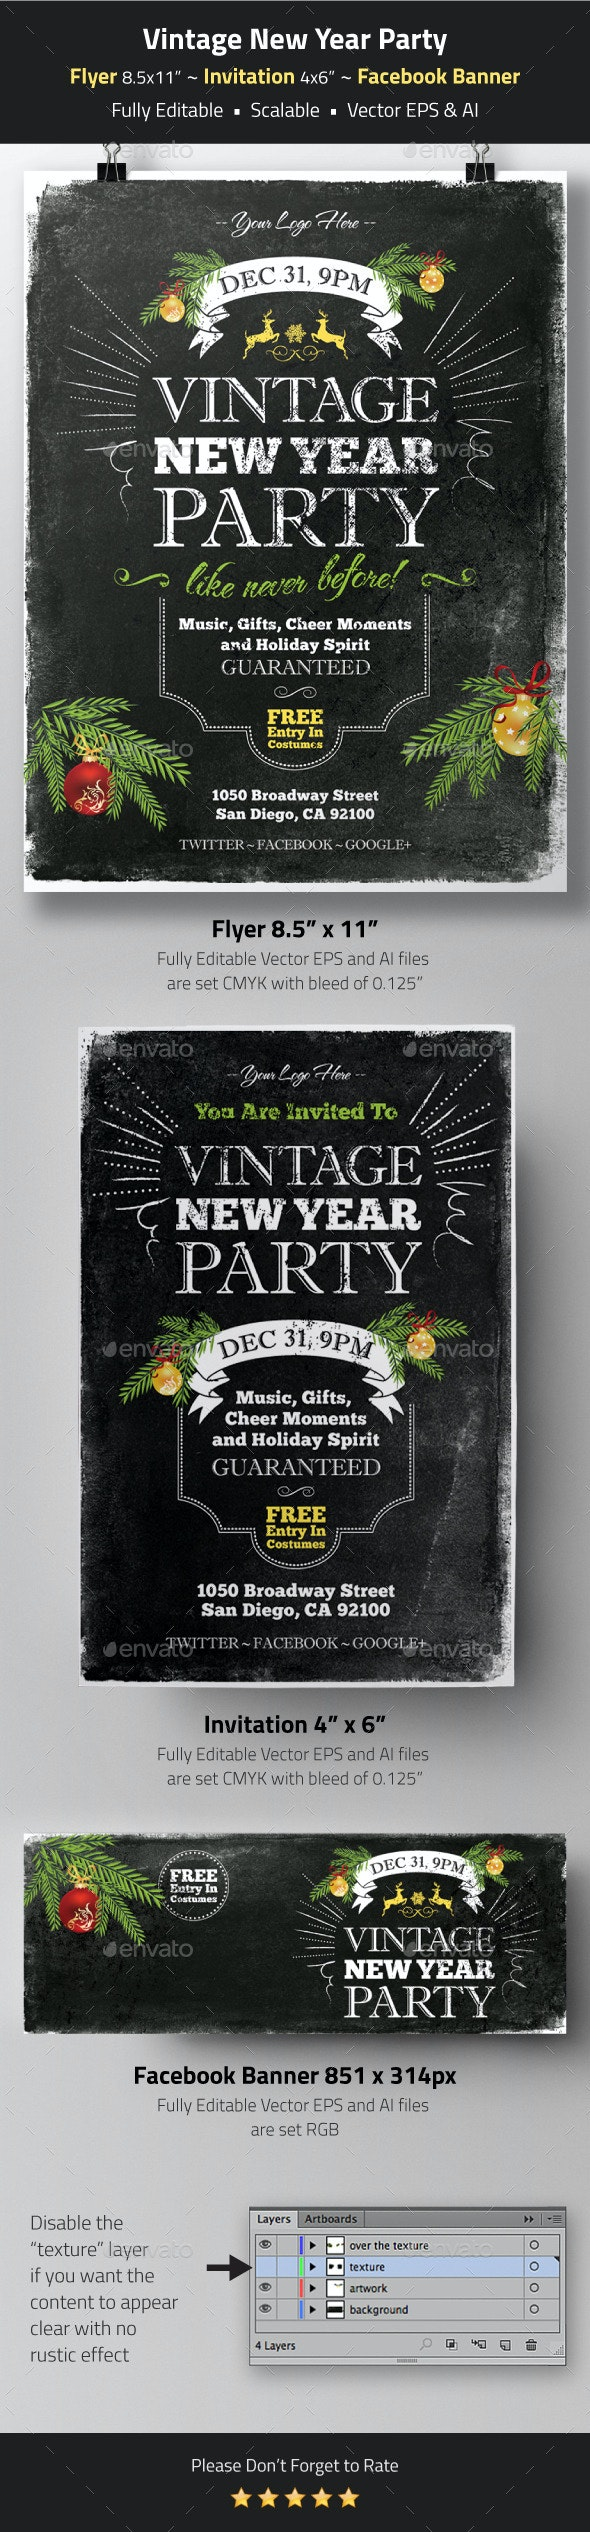 Vintage New Year Party Flyer, Invitation, Banner - Holidays Events